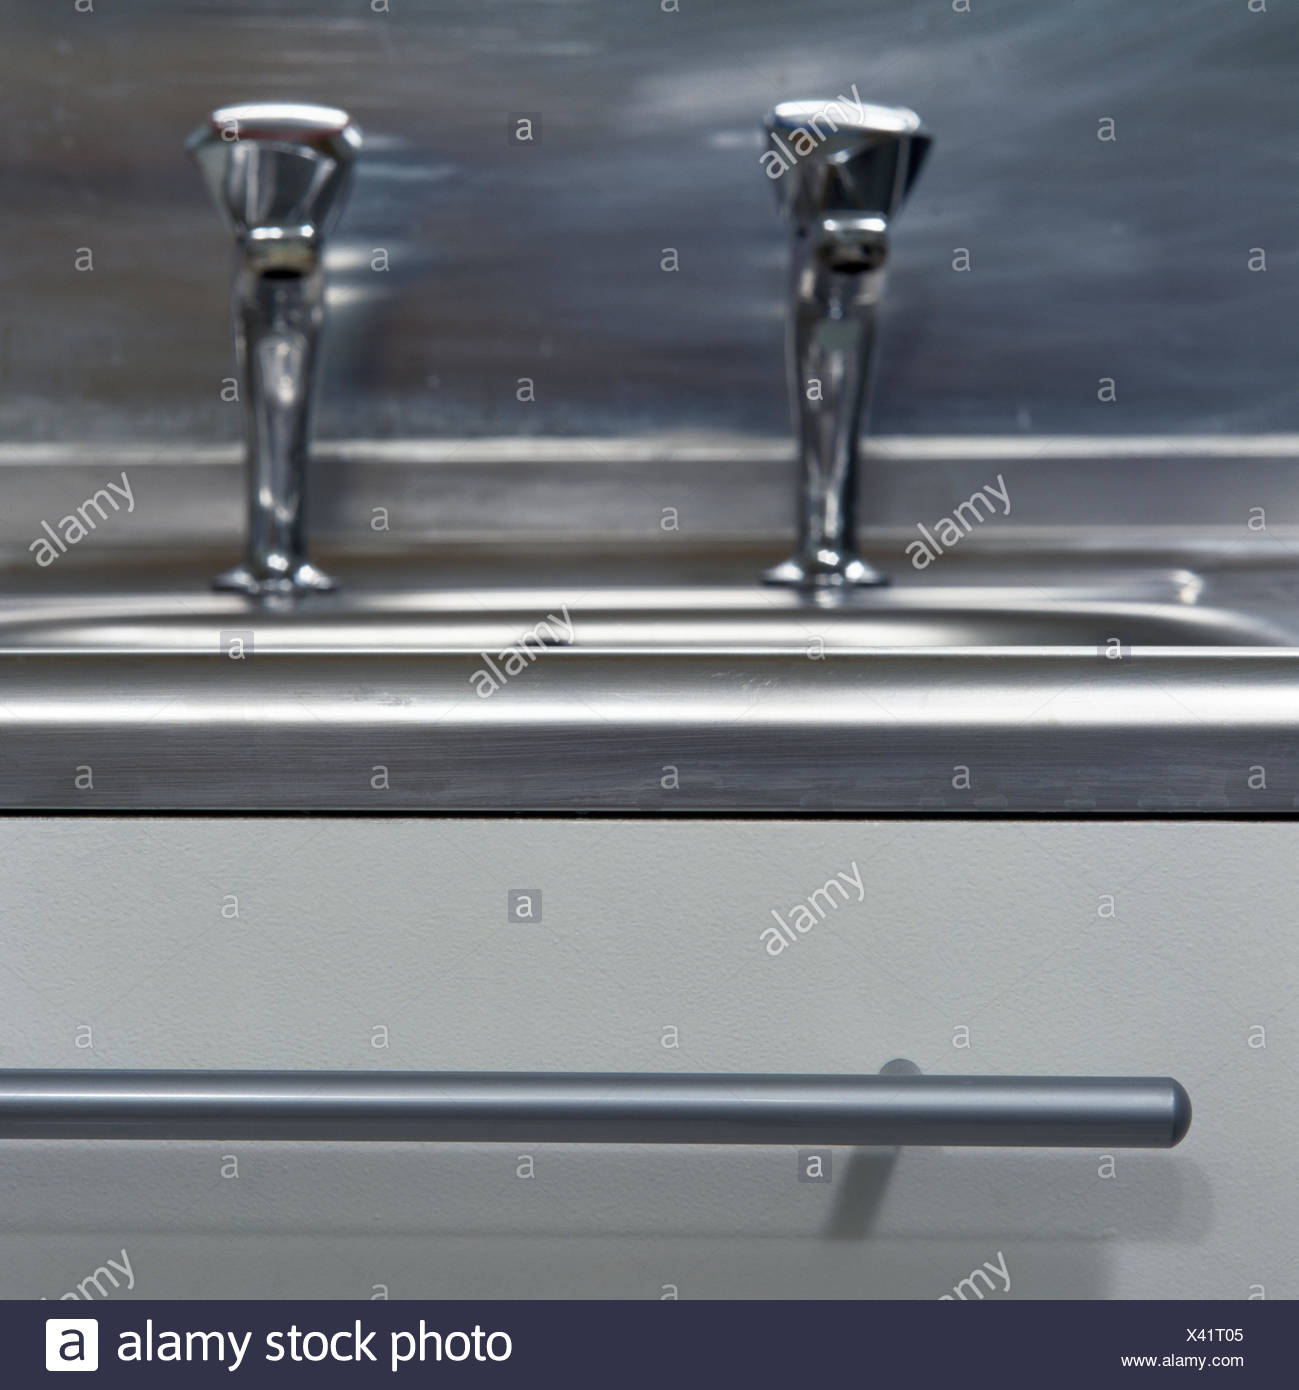 Close-up of stainless steel taps - Stock Image